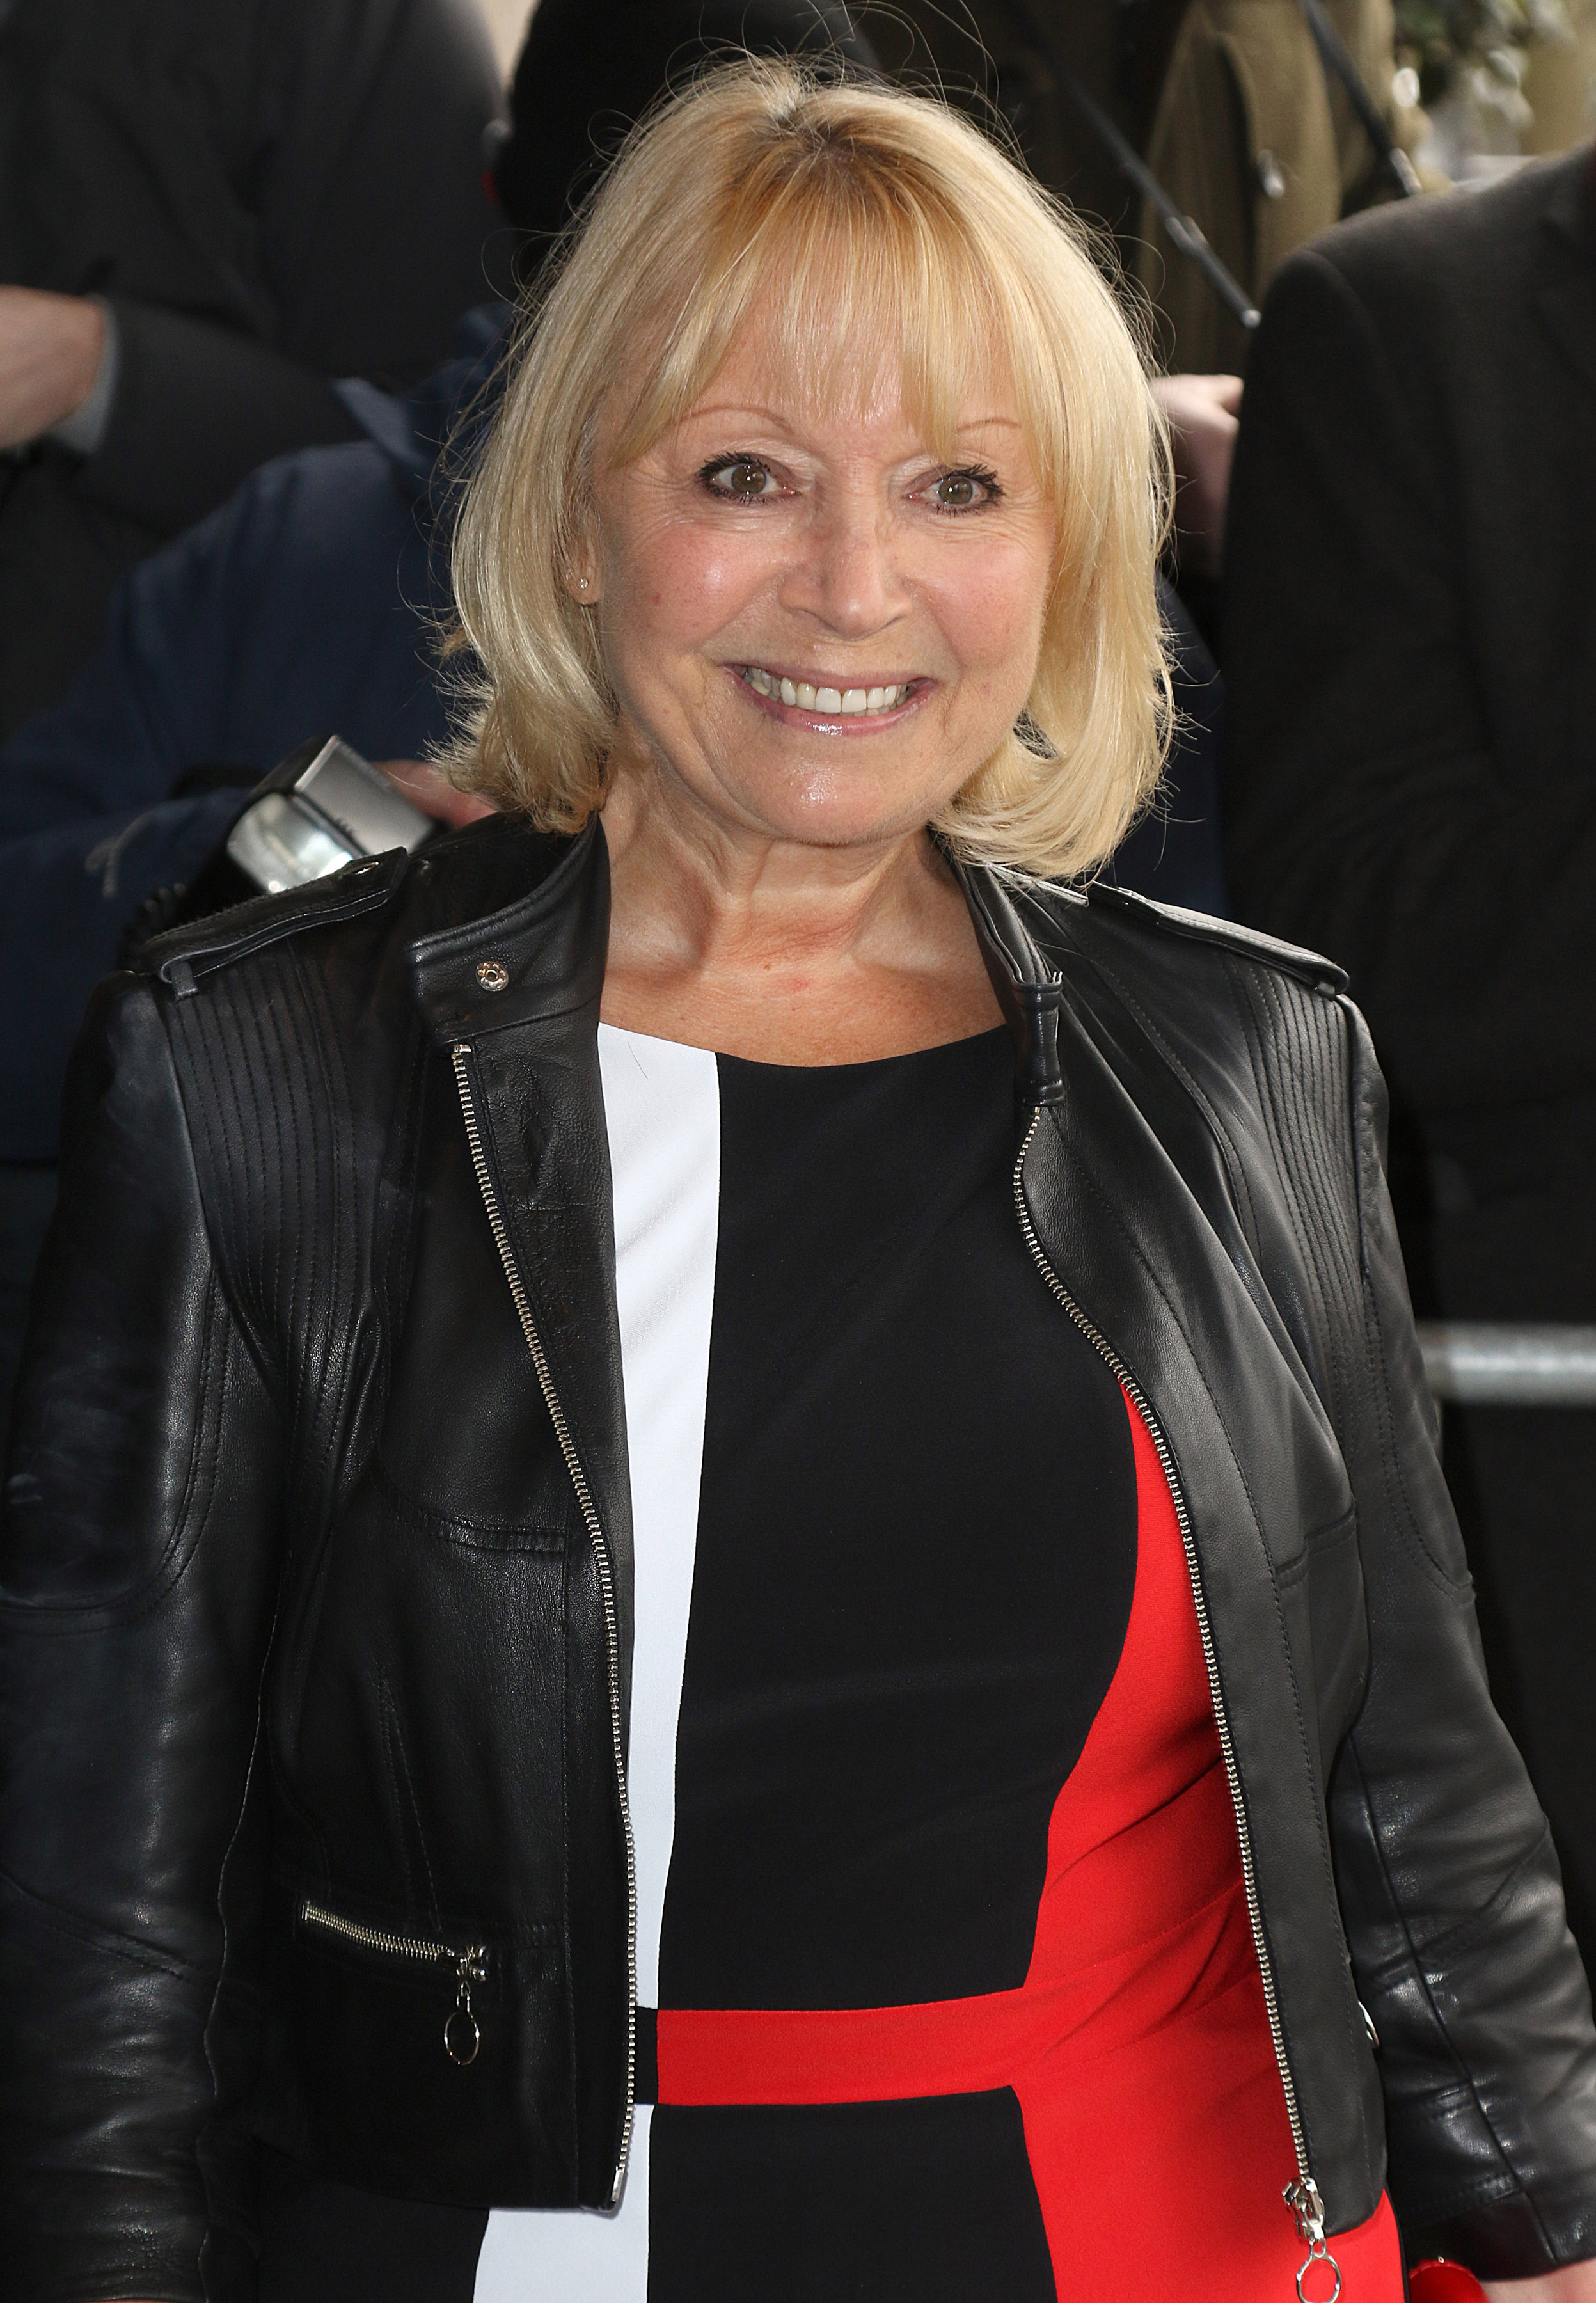 The 2016 TRIC Awards get underway with Fashion and Style at the Grosvenor House, London UK, 08 March 2016. Pictured: Lin Blakley,Katie McGlynn Tisha Merry Brooke Vincent Lady C Laura Tobin Laura Whitmore David Morgan Lee Mead Leigh Francis Keith Lemon Lin Blakley Lisa Snowdon Lizzie Cundy Louise Minchin Carol Kirkwood Dan Walker Sally Nugent Stephanie McGovern Martin Keown Roger Sloman Sarah George Ref: SPL1243287 080316 NON-EXCLUSIVE Picture by: SplashNews.com Splash News and Pictures Los Angeles: 310-821-2666 New York: 212-619-2666 London: 0207 644 7656 Milan: +39 02 56567623 photodesk@splashnews.com World Rights